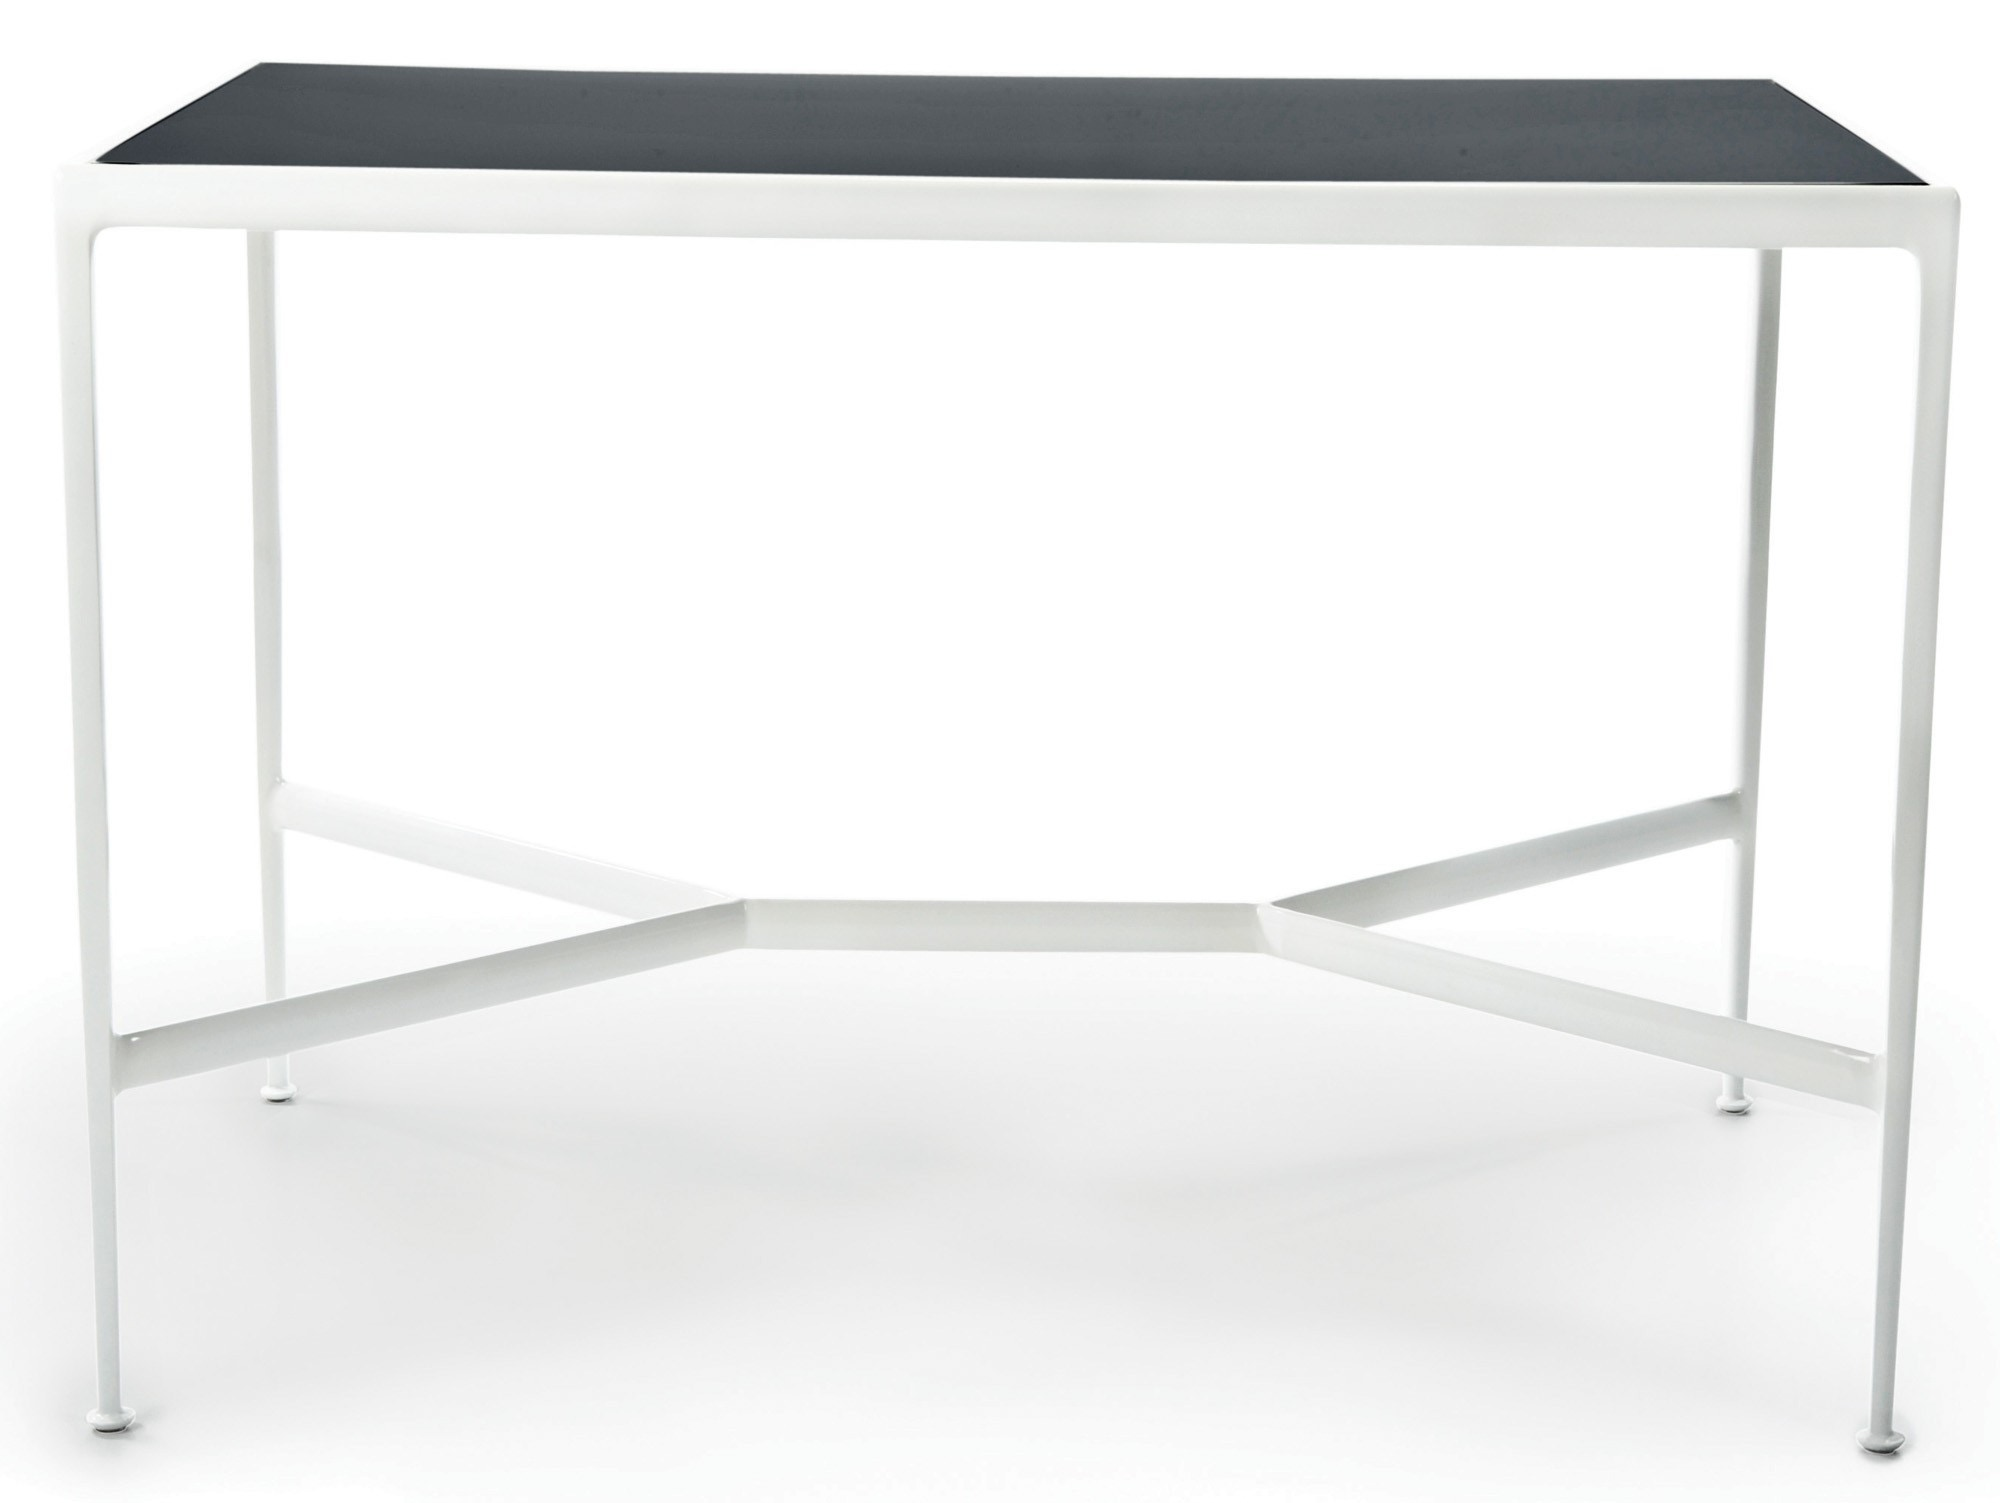 richard schultz  collection bar height table   x   - richard schultz  collection bar height table   x